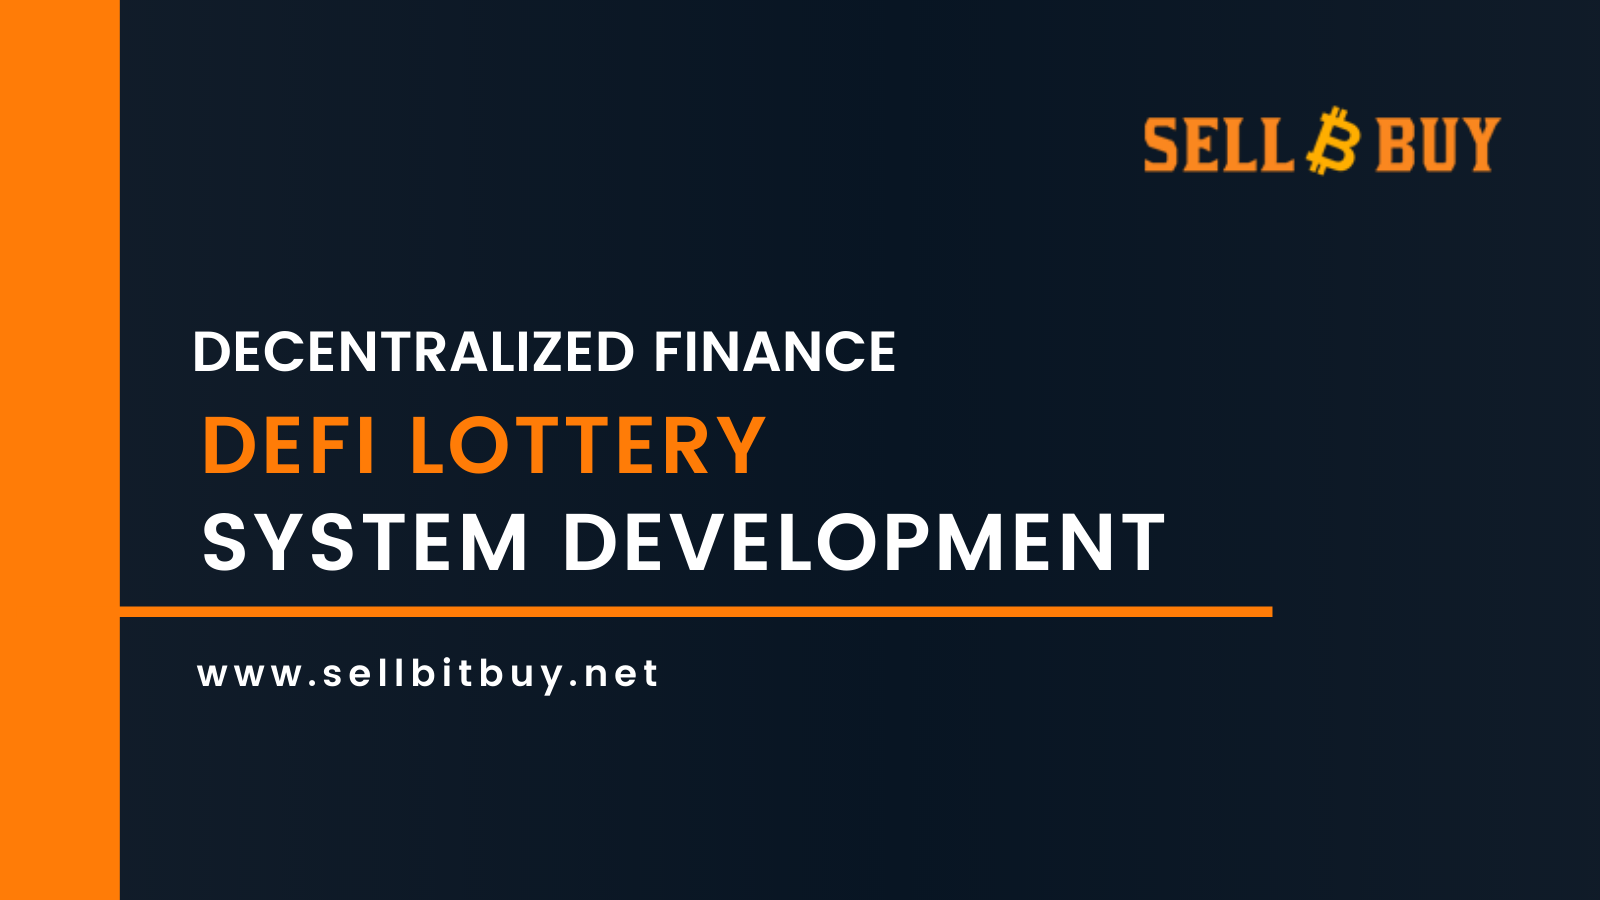 Decentralized Finance (DeFi) Lottery System Development